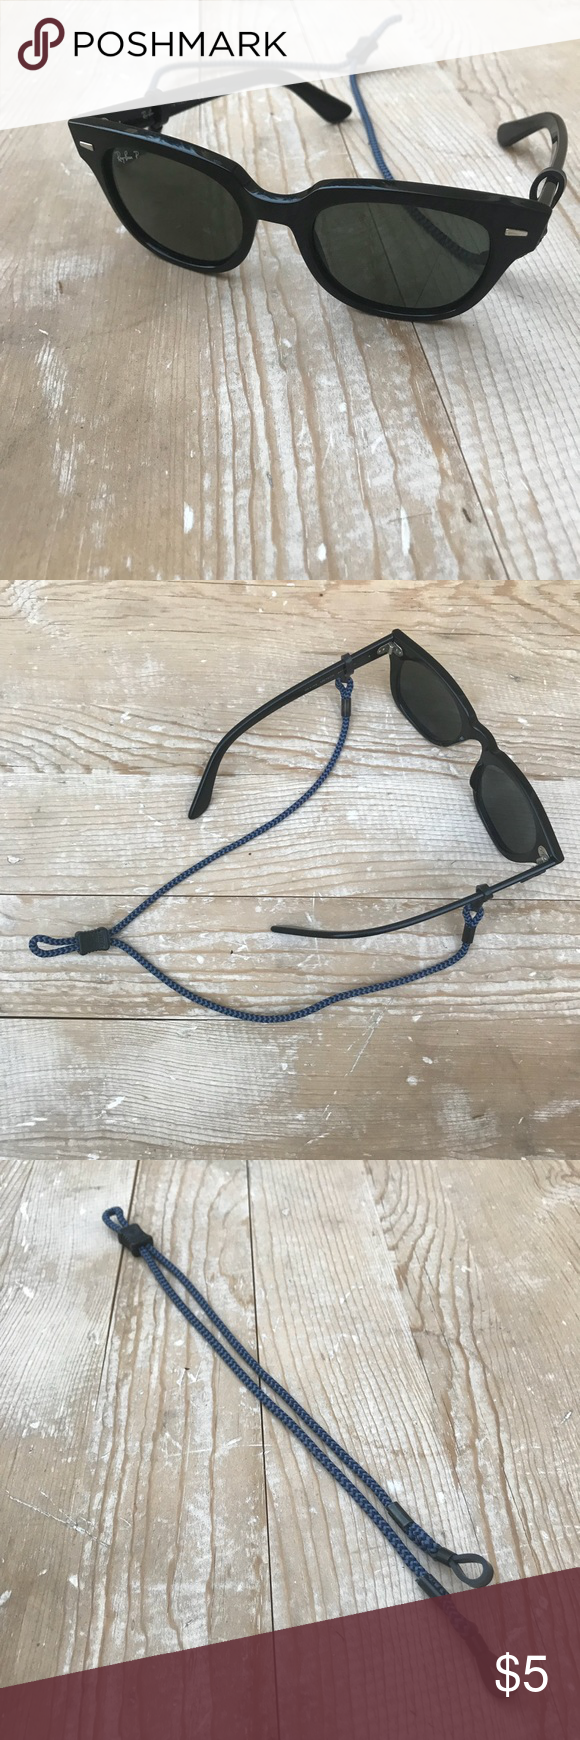 6f6475ea9b REI Croakies Terra Spec Cord Eyewear Retainer Always keep your glasses or  sunglasses close by with